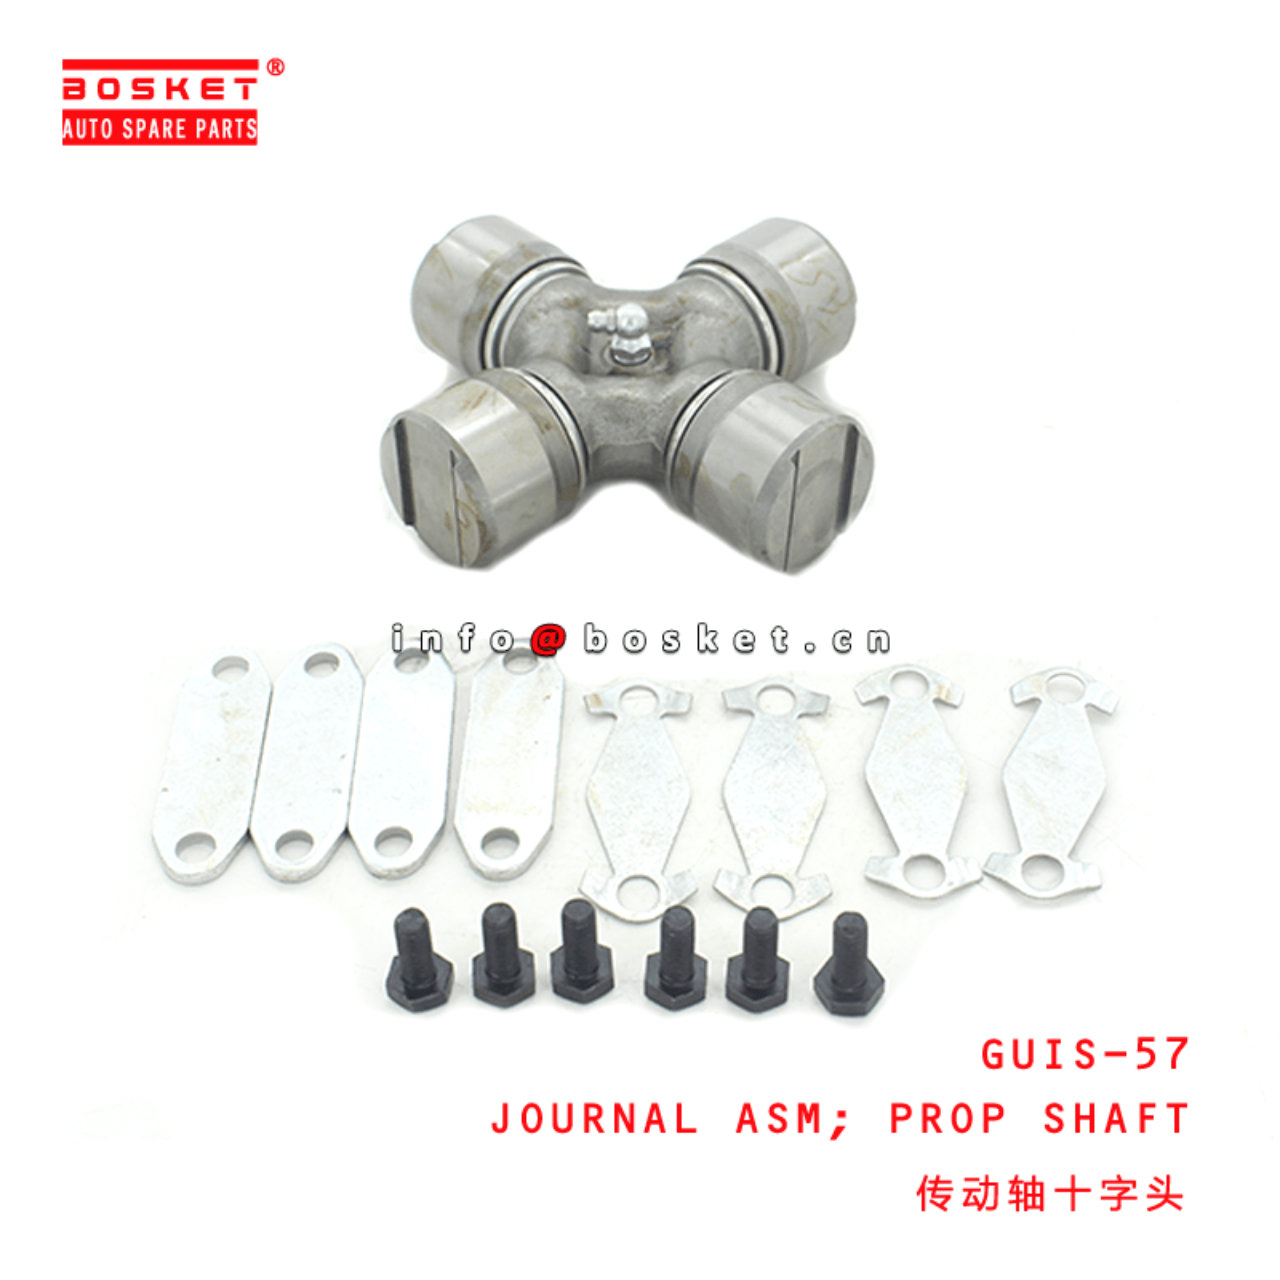 GUIS-57 Propeller Shaft Journal Assembly Suitable for ISUZU